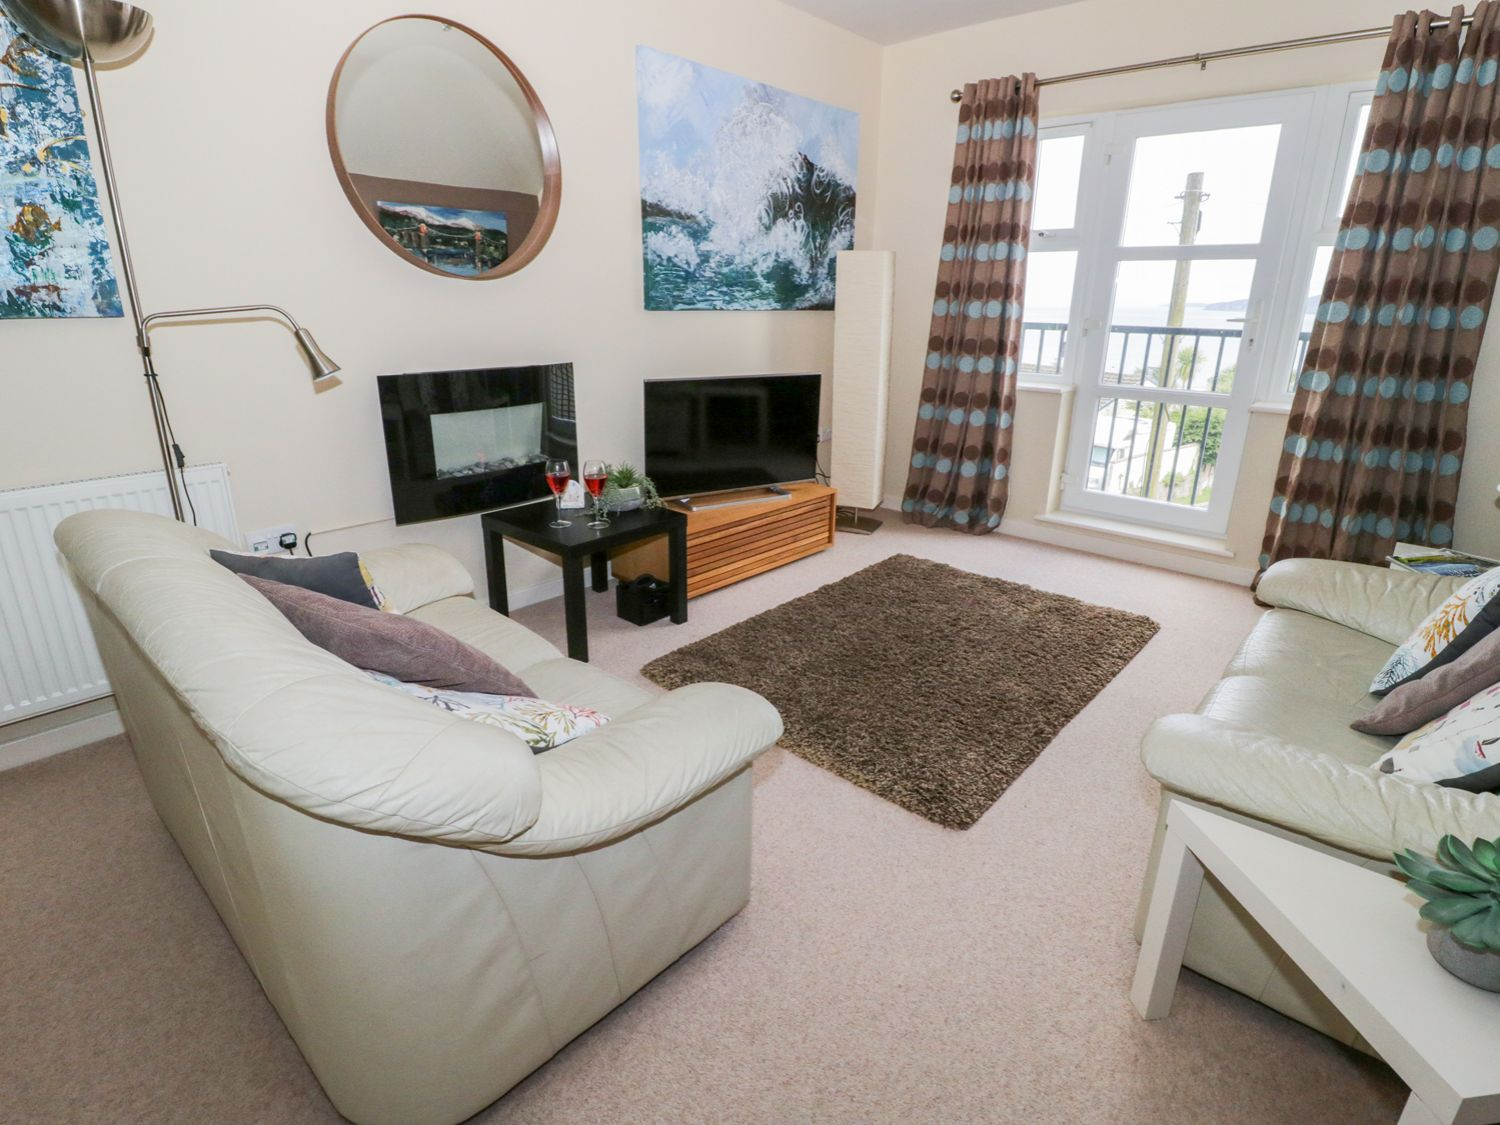 The Penthouse in Benllech - sleeps 4 people